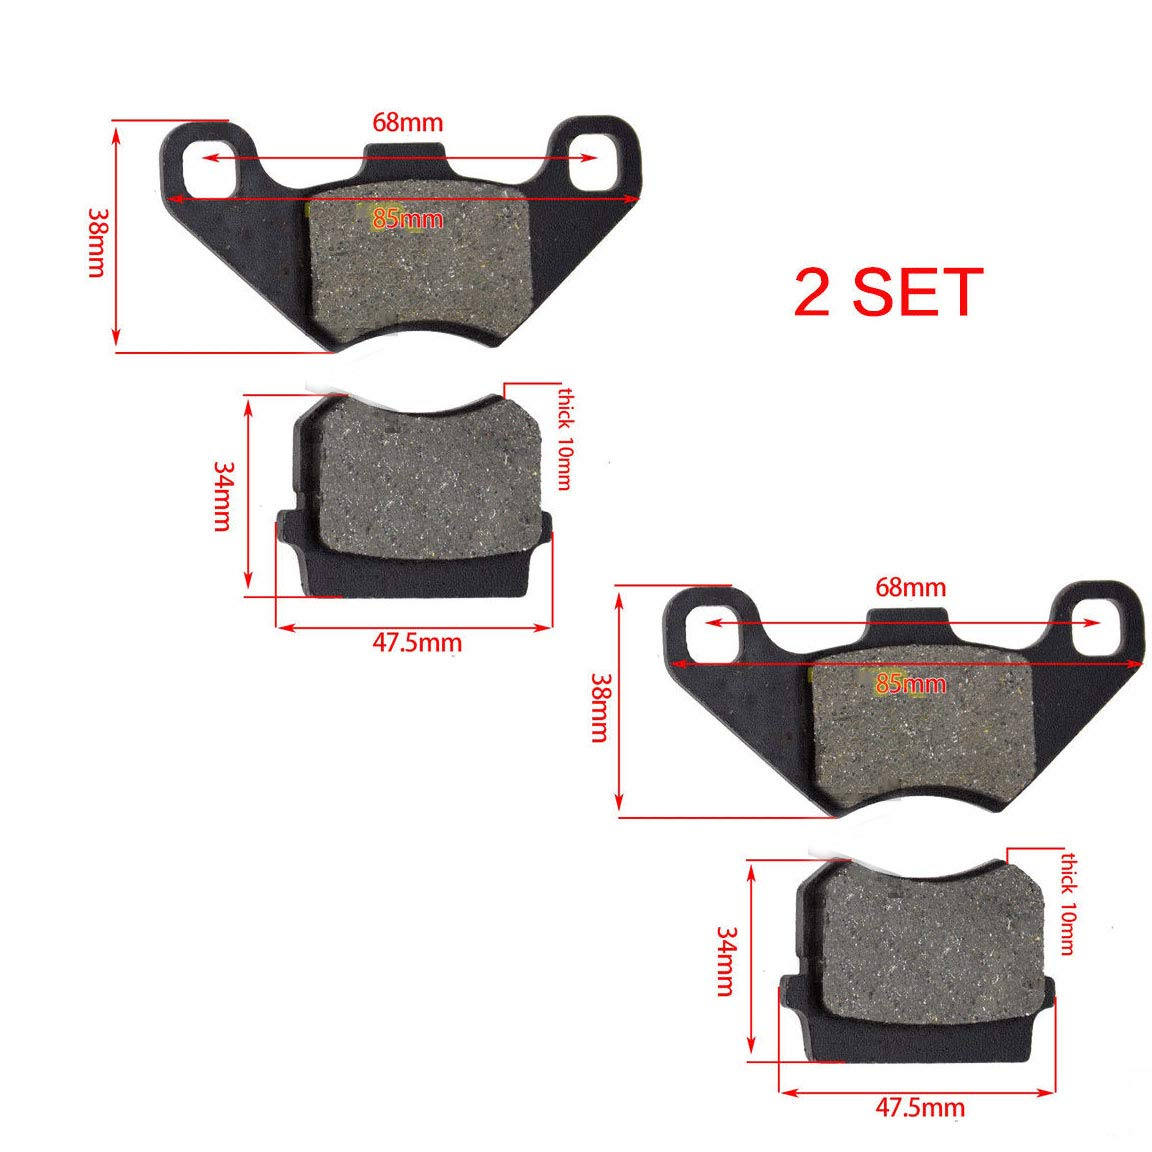 Hammerhead SS 250 GO KART, Front Brake Pads left /& right side compatible with Hammerhead 150cc Go Karts GL150 GT150 GTS150 SS150 part# 7.020.016